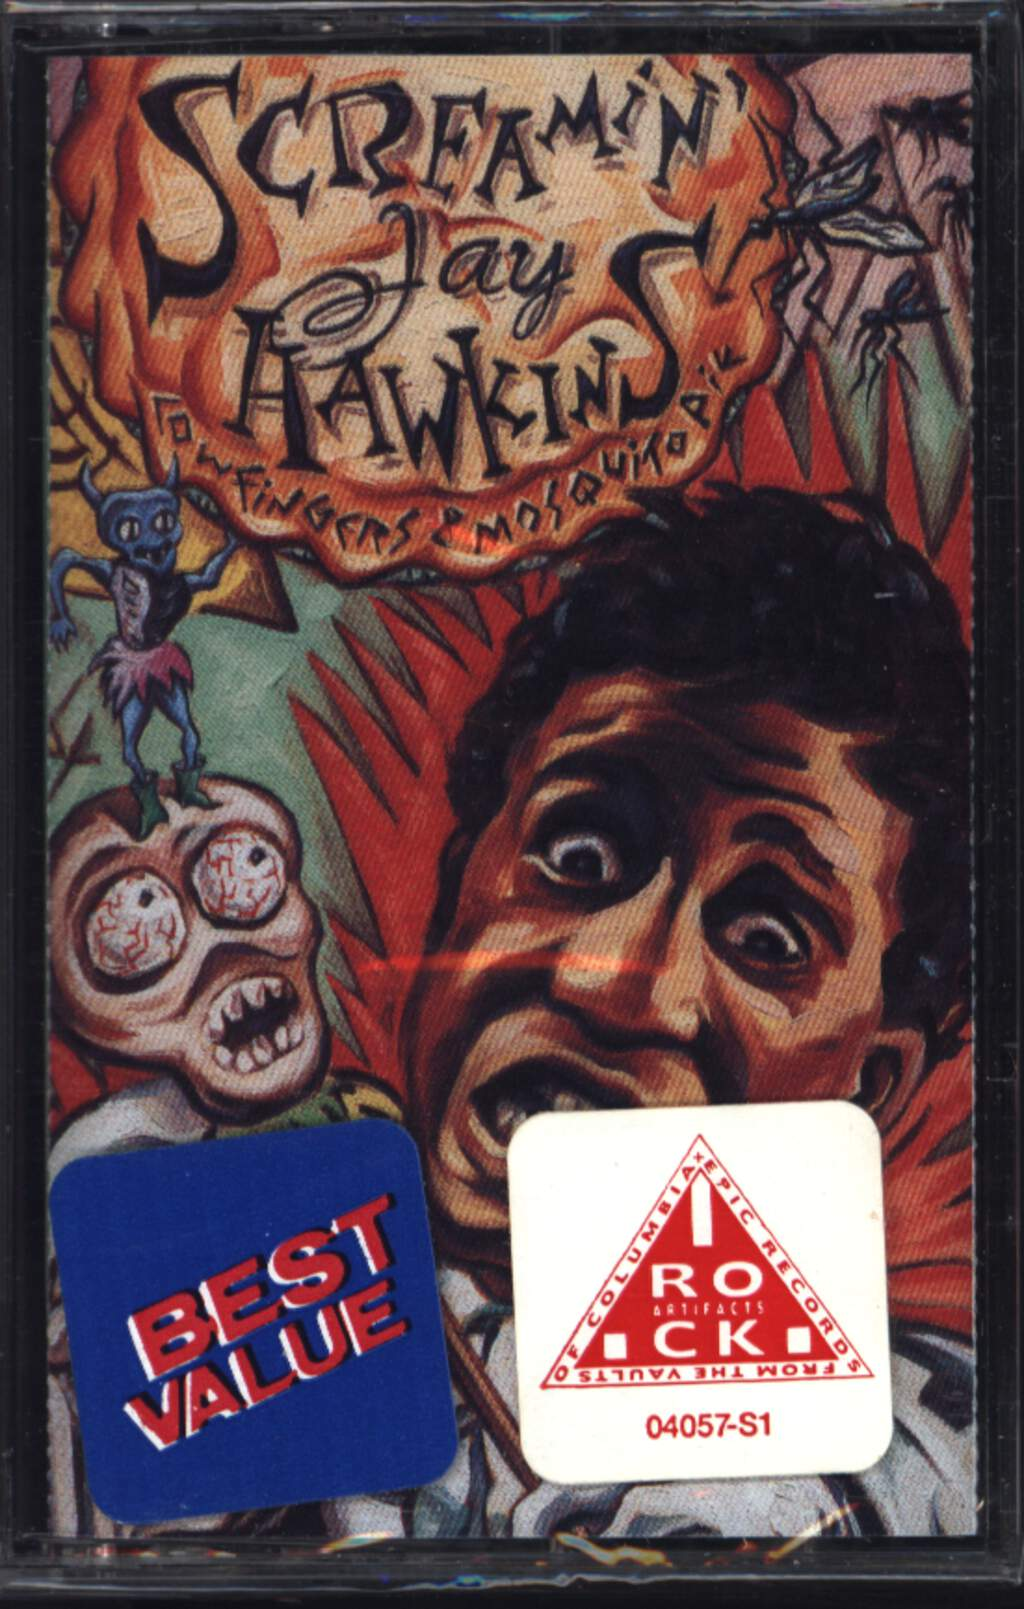 Screamin'jay Hawkins: Cow Fingers & Mosquito Pie, Compact Cassette